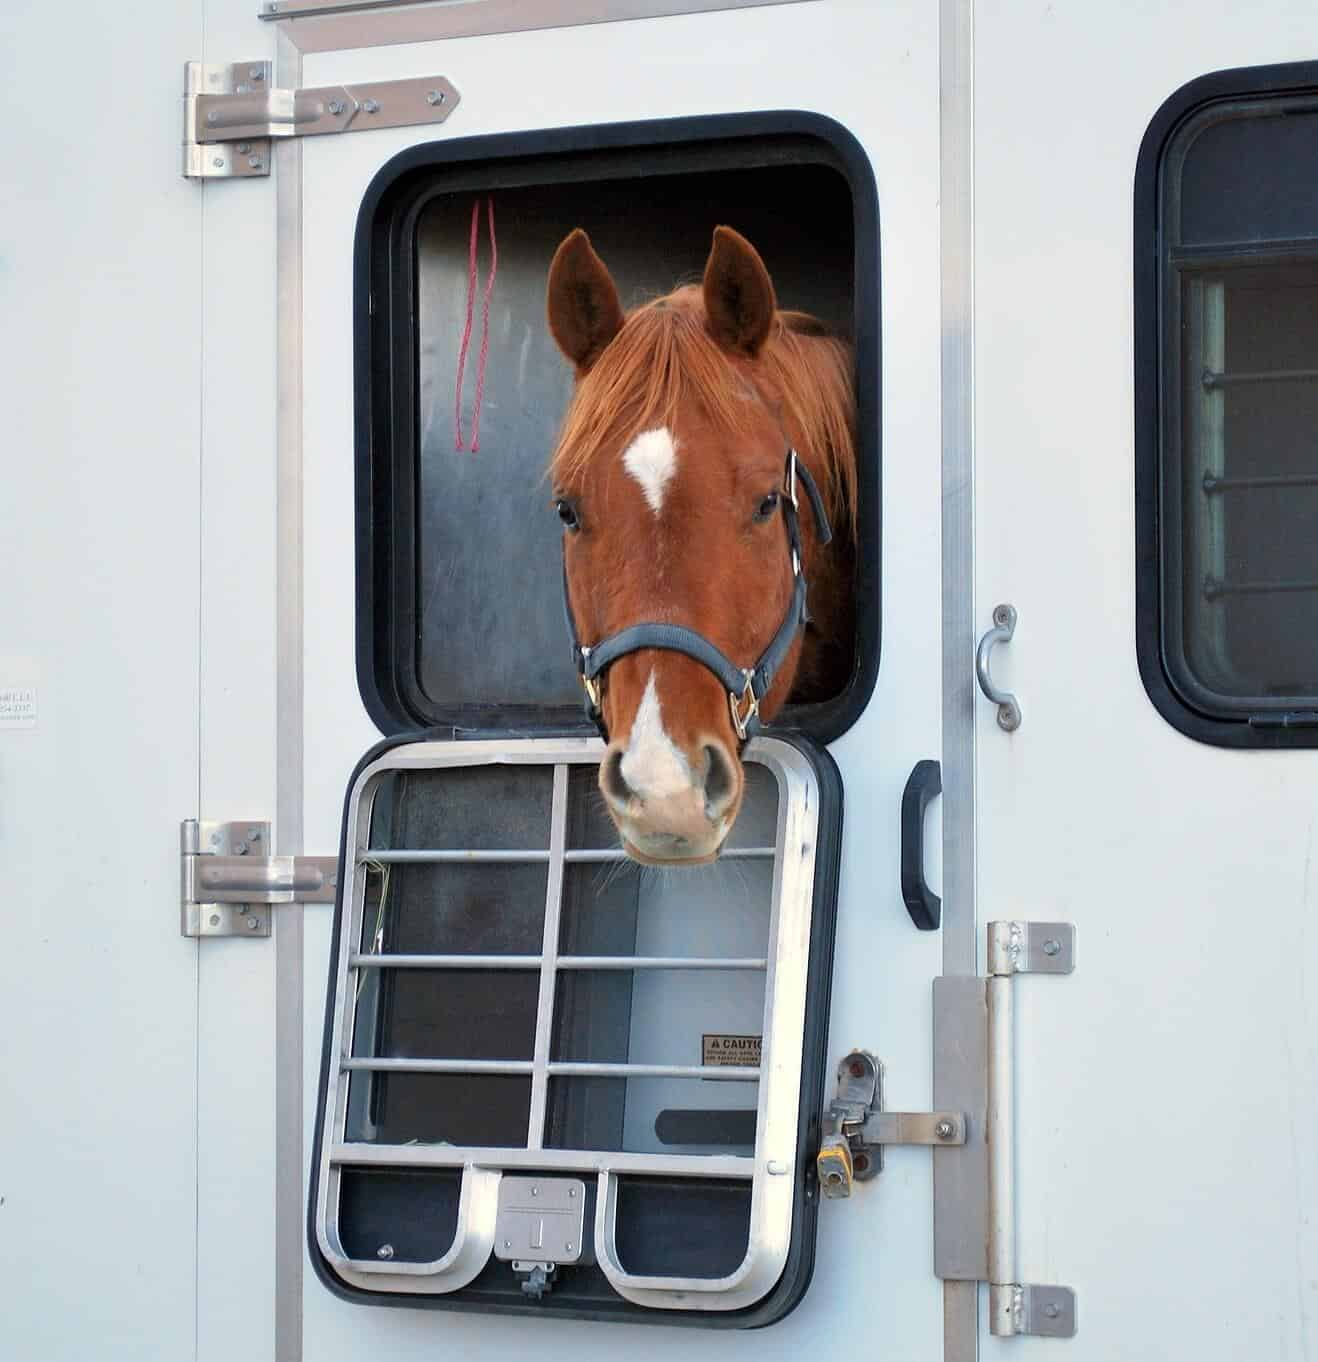 Horse looking out of horsebox